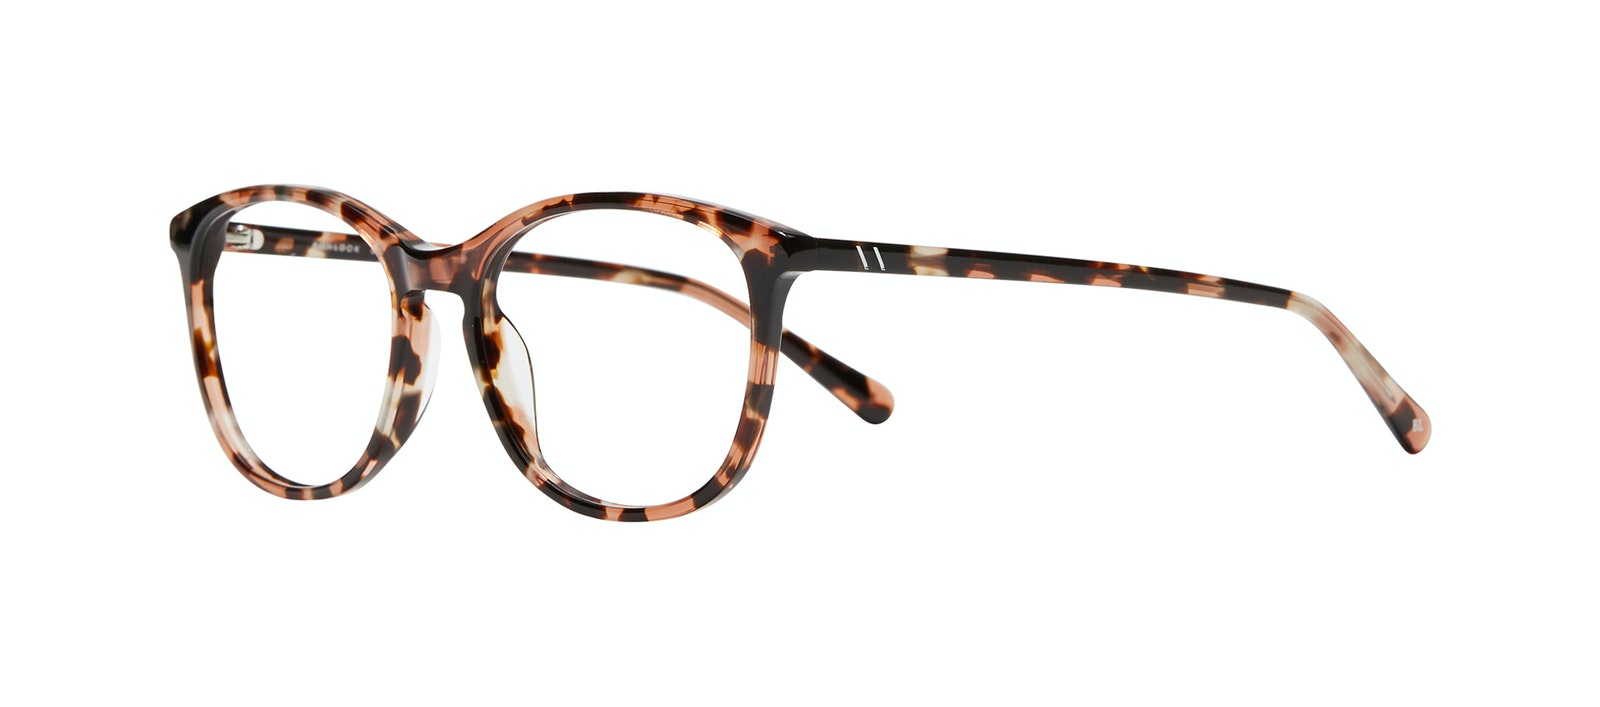 Affordable Fashion Glasses Rectangle Square Round Eyeglasses Women Nadine XL Pink Tortoise Tilt